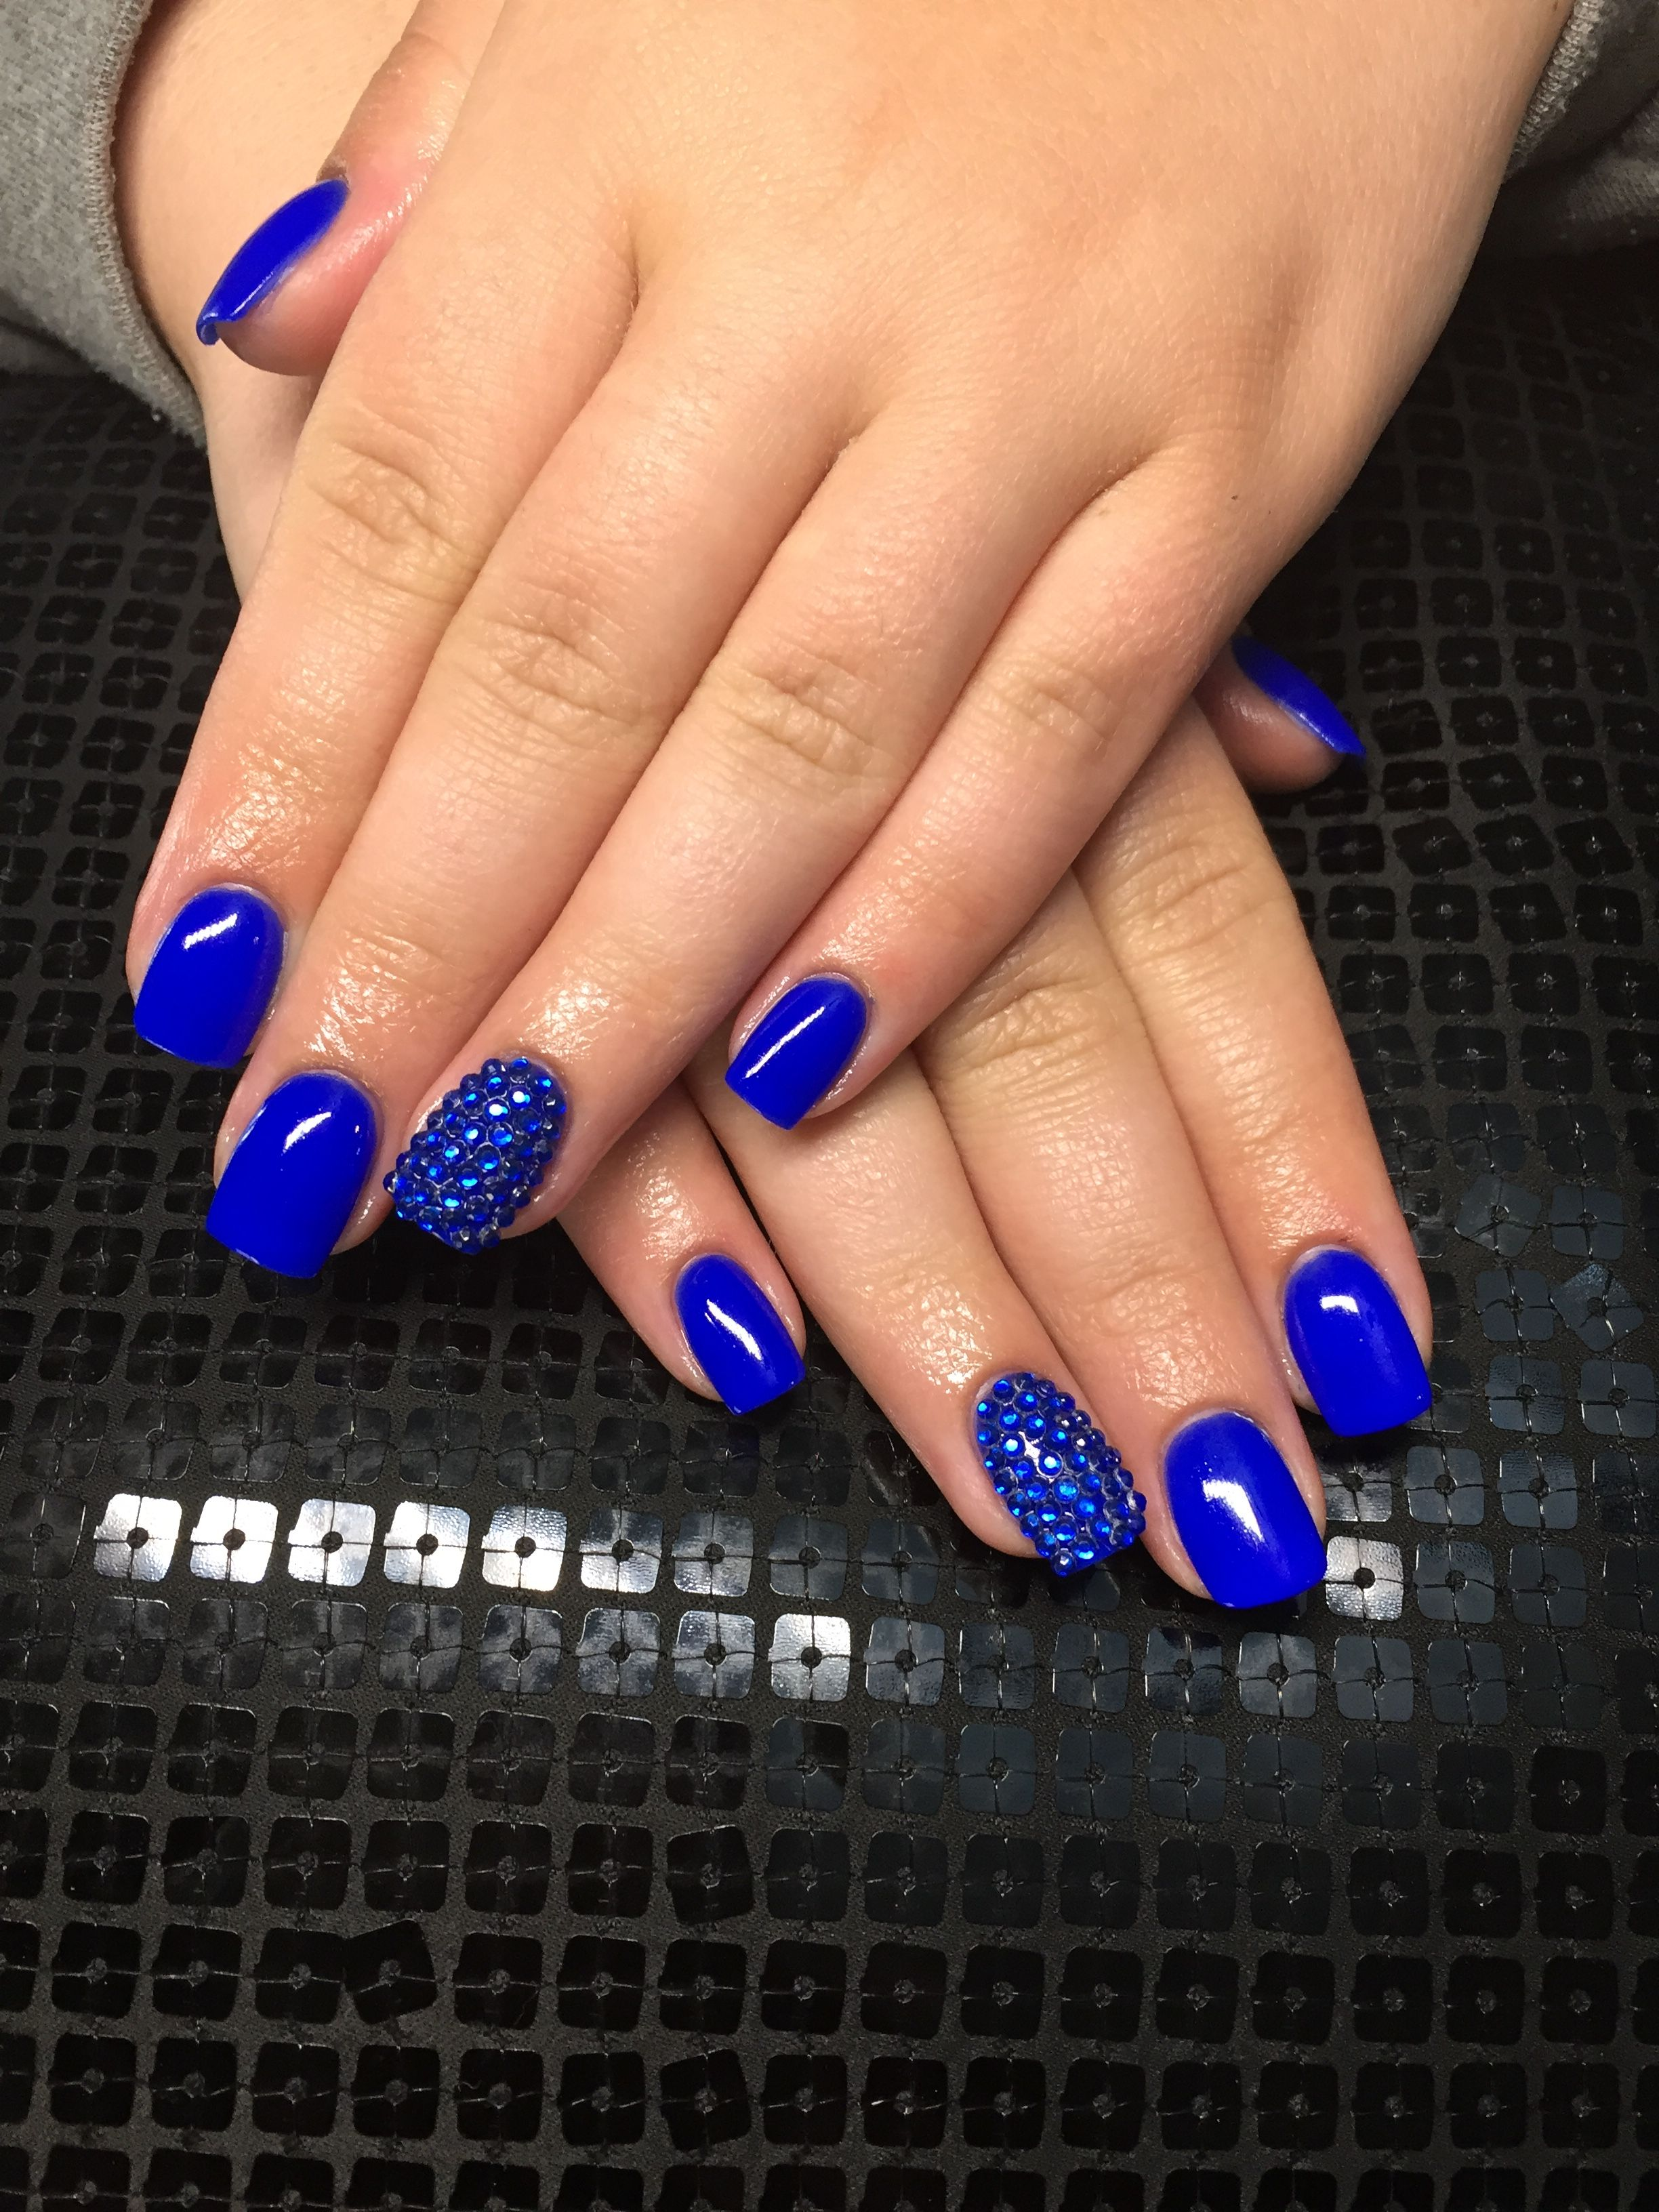 Pin by Sherry Ball on My SNS nail colors | Sns nails